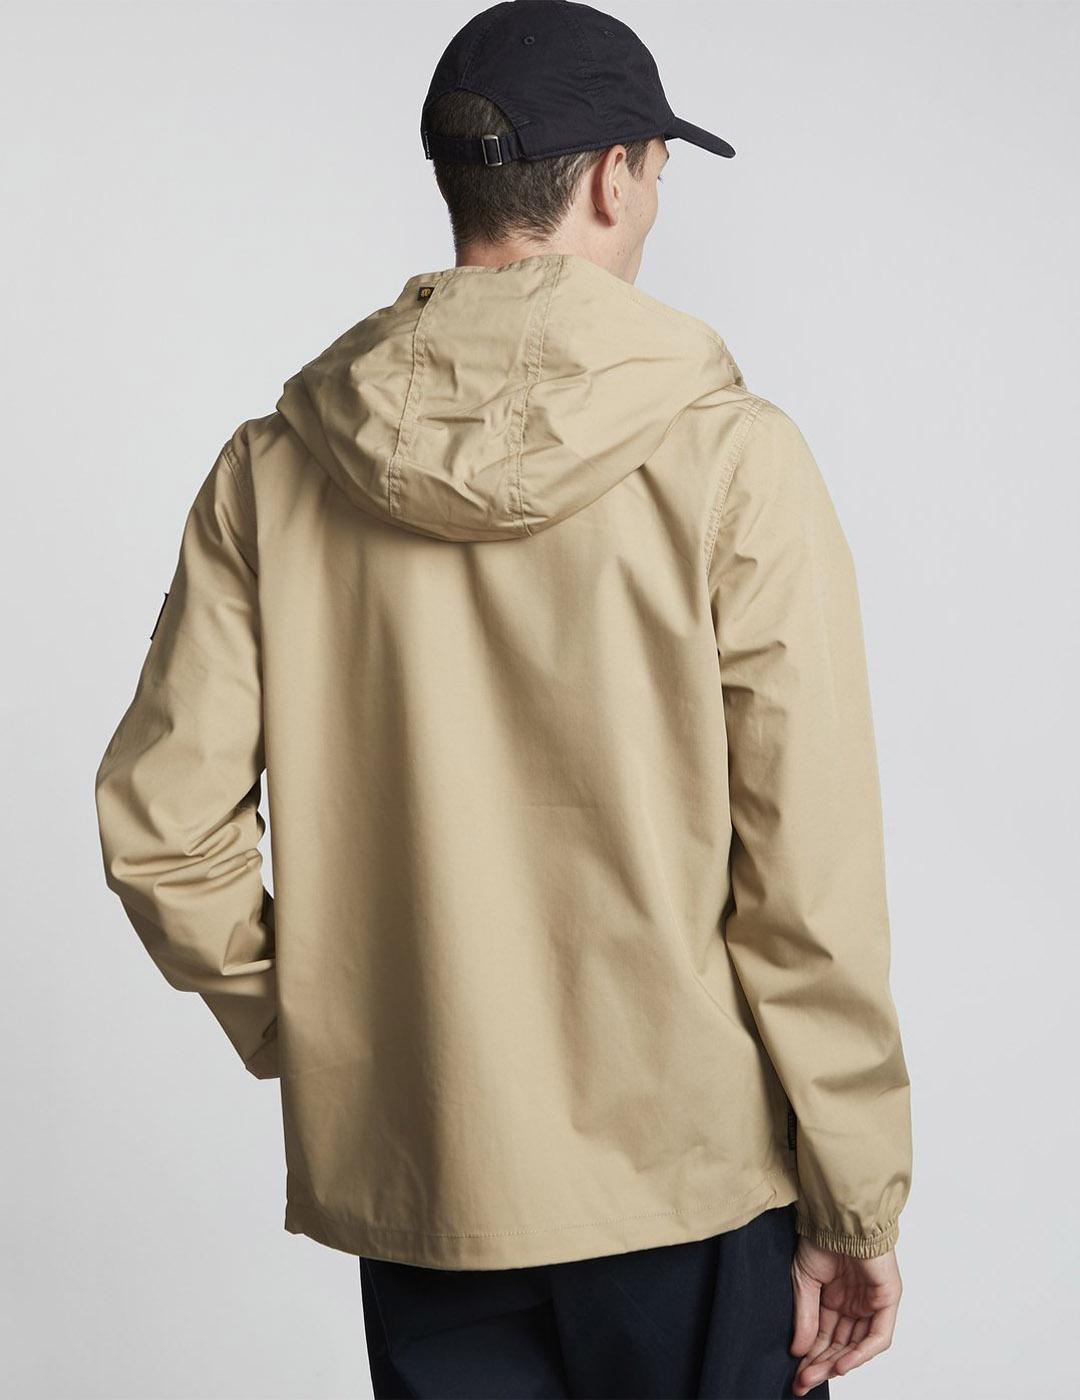 Cazazdora Element ALDER LIGHT JACKET Beige